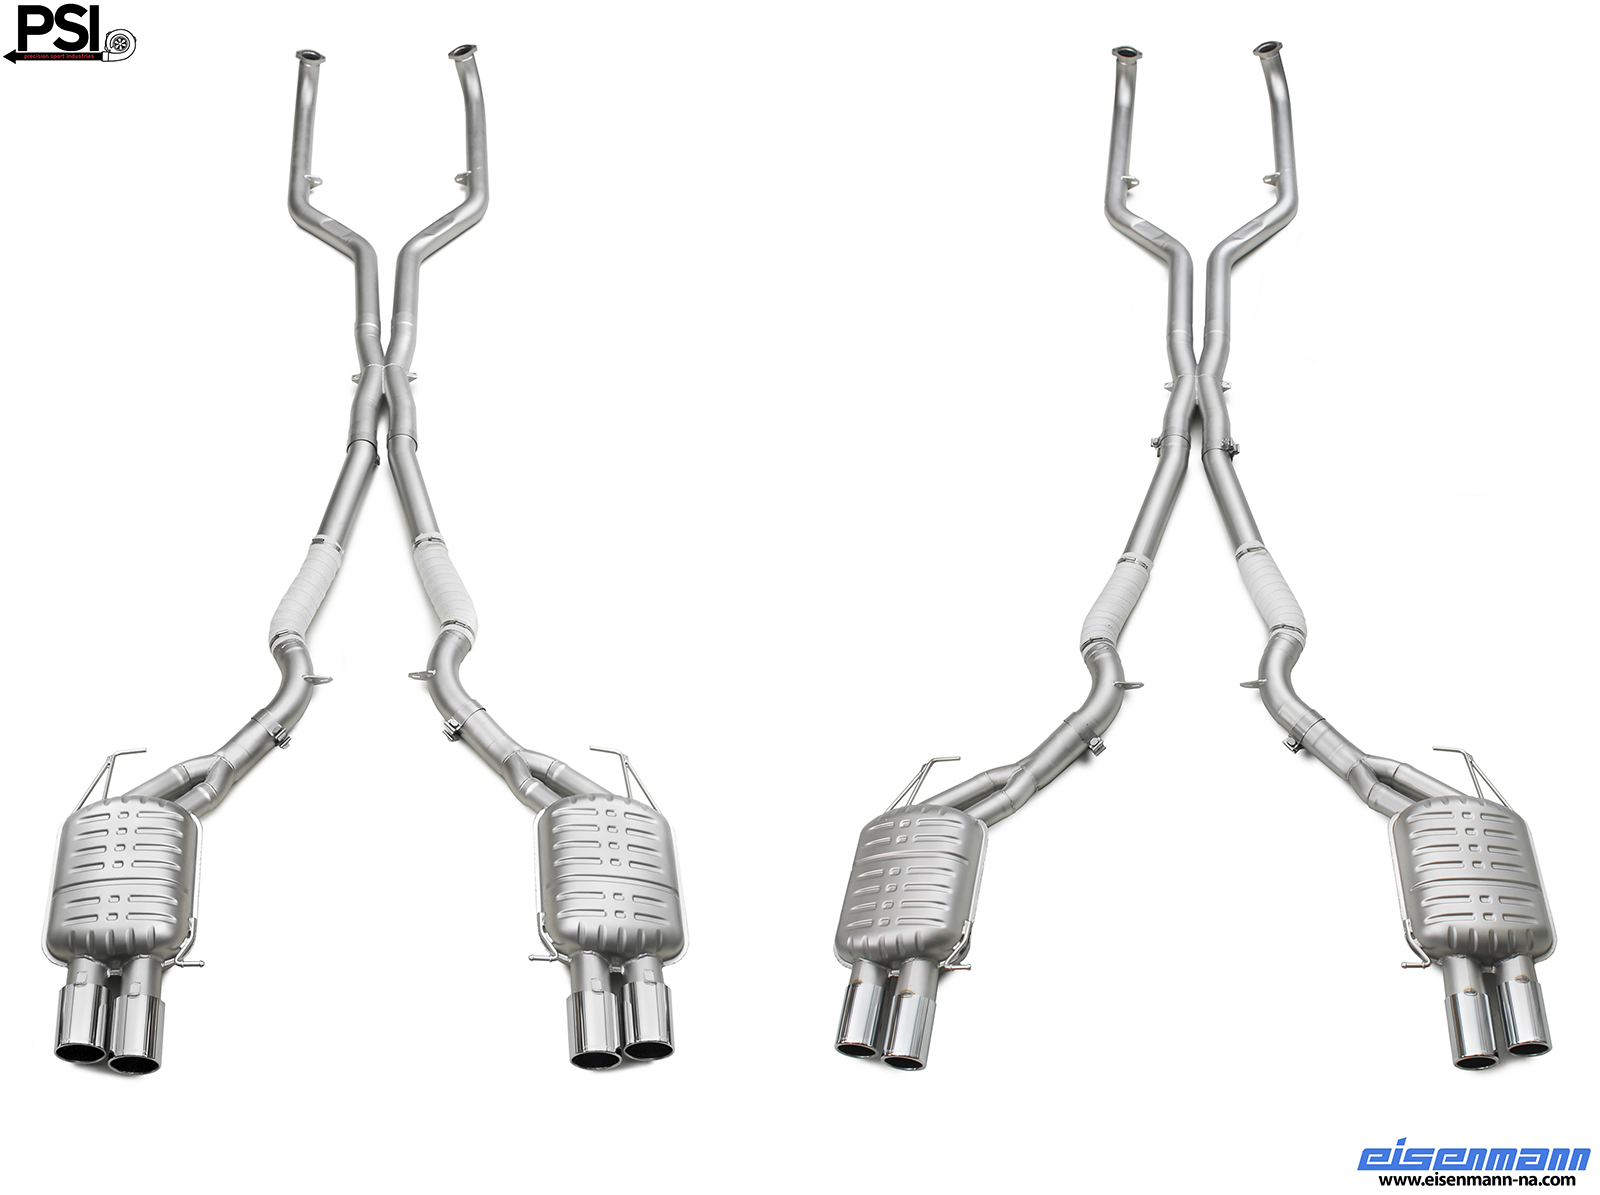 Eisenmann BMW F10 M5 Exhaust System by PSI